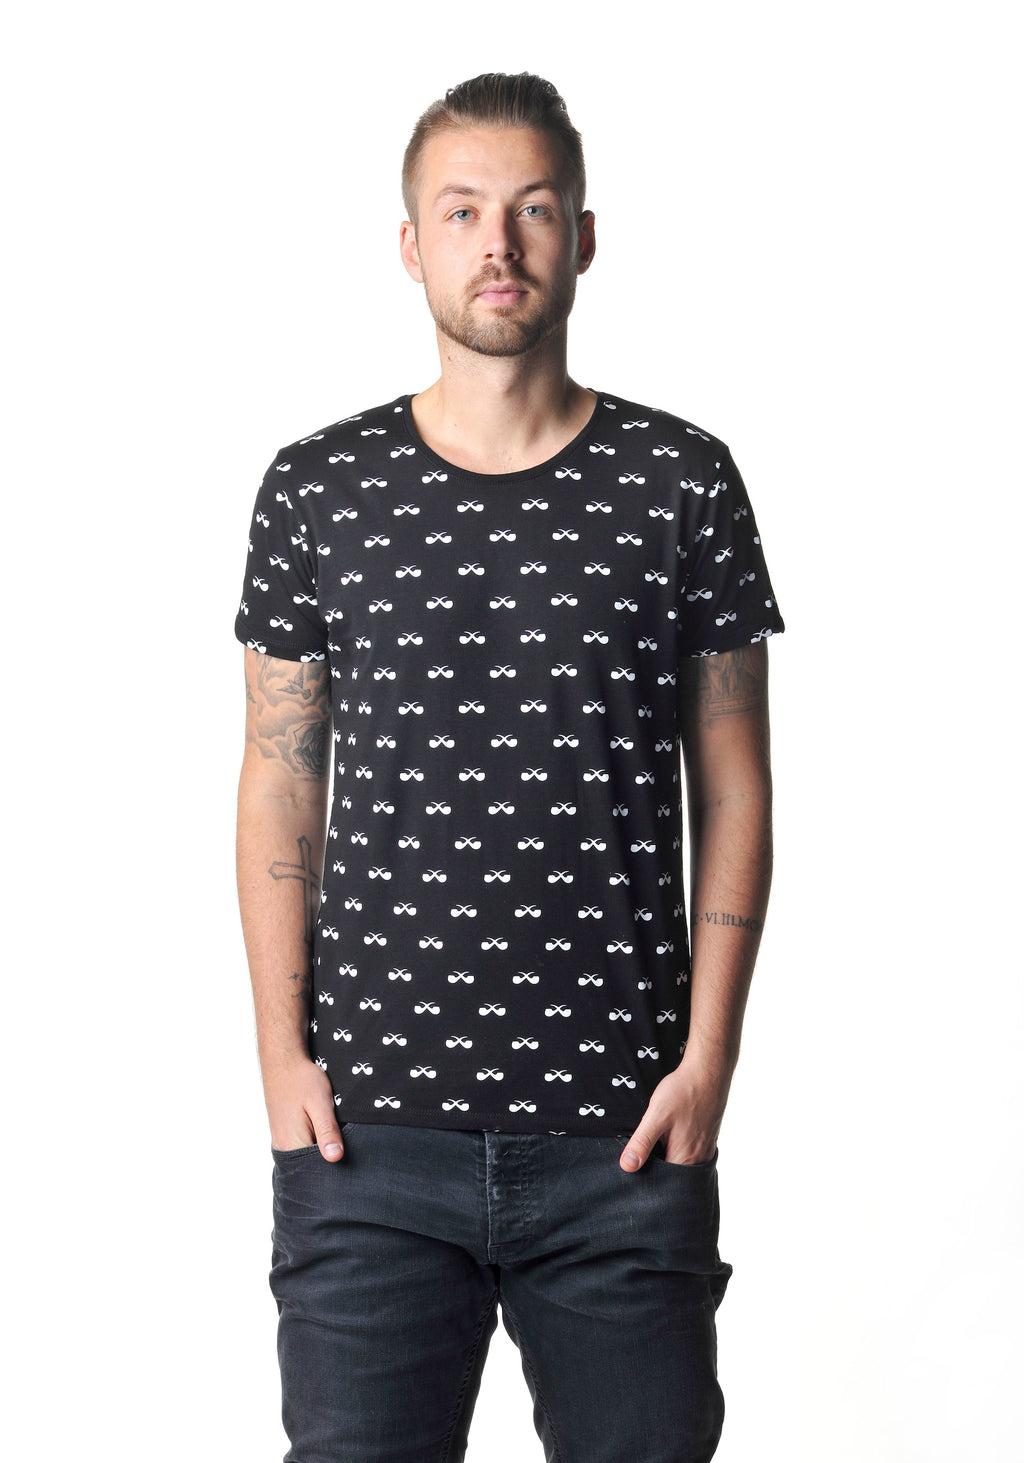 All-Over Shirt Pfeifen schwarz